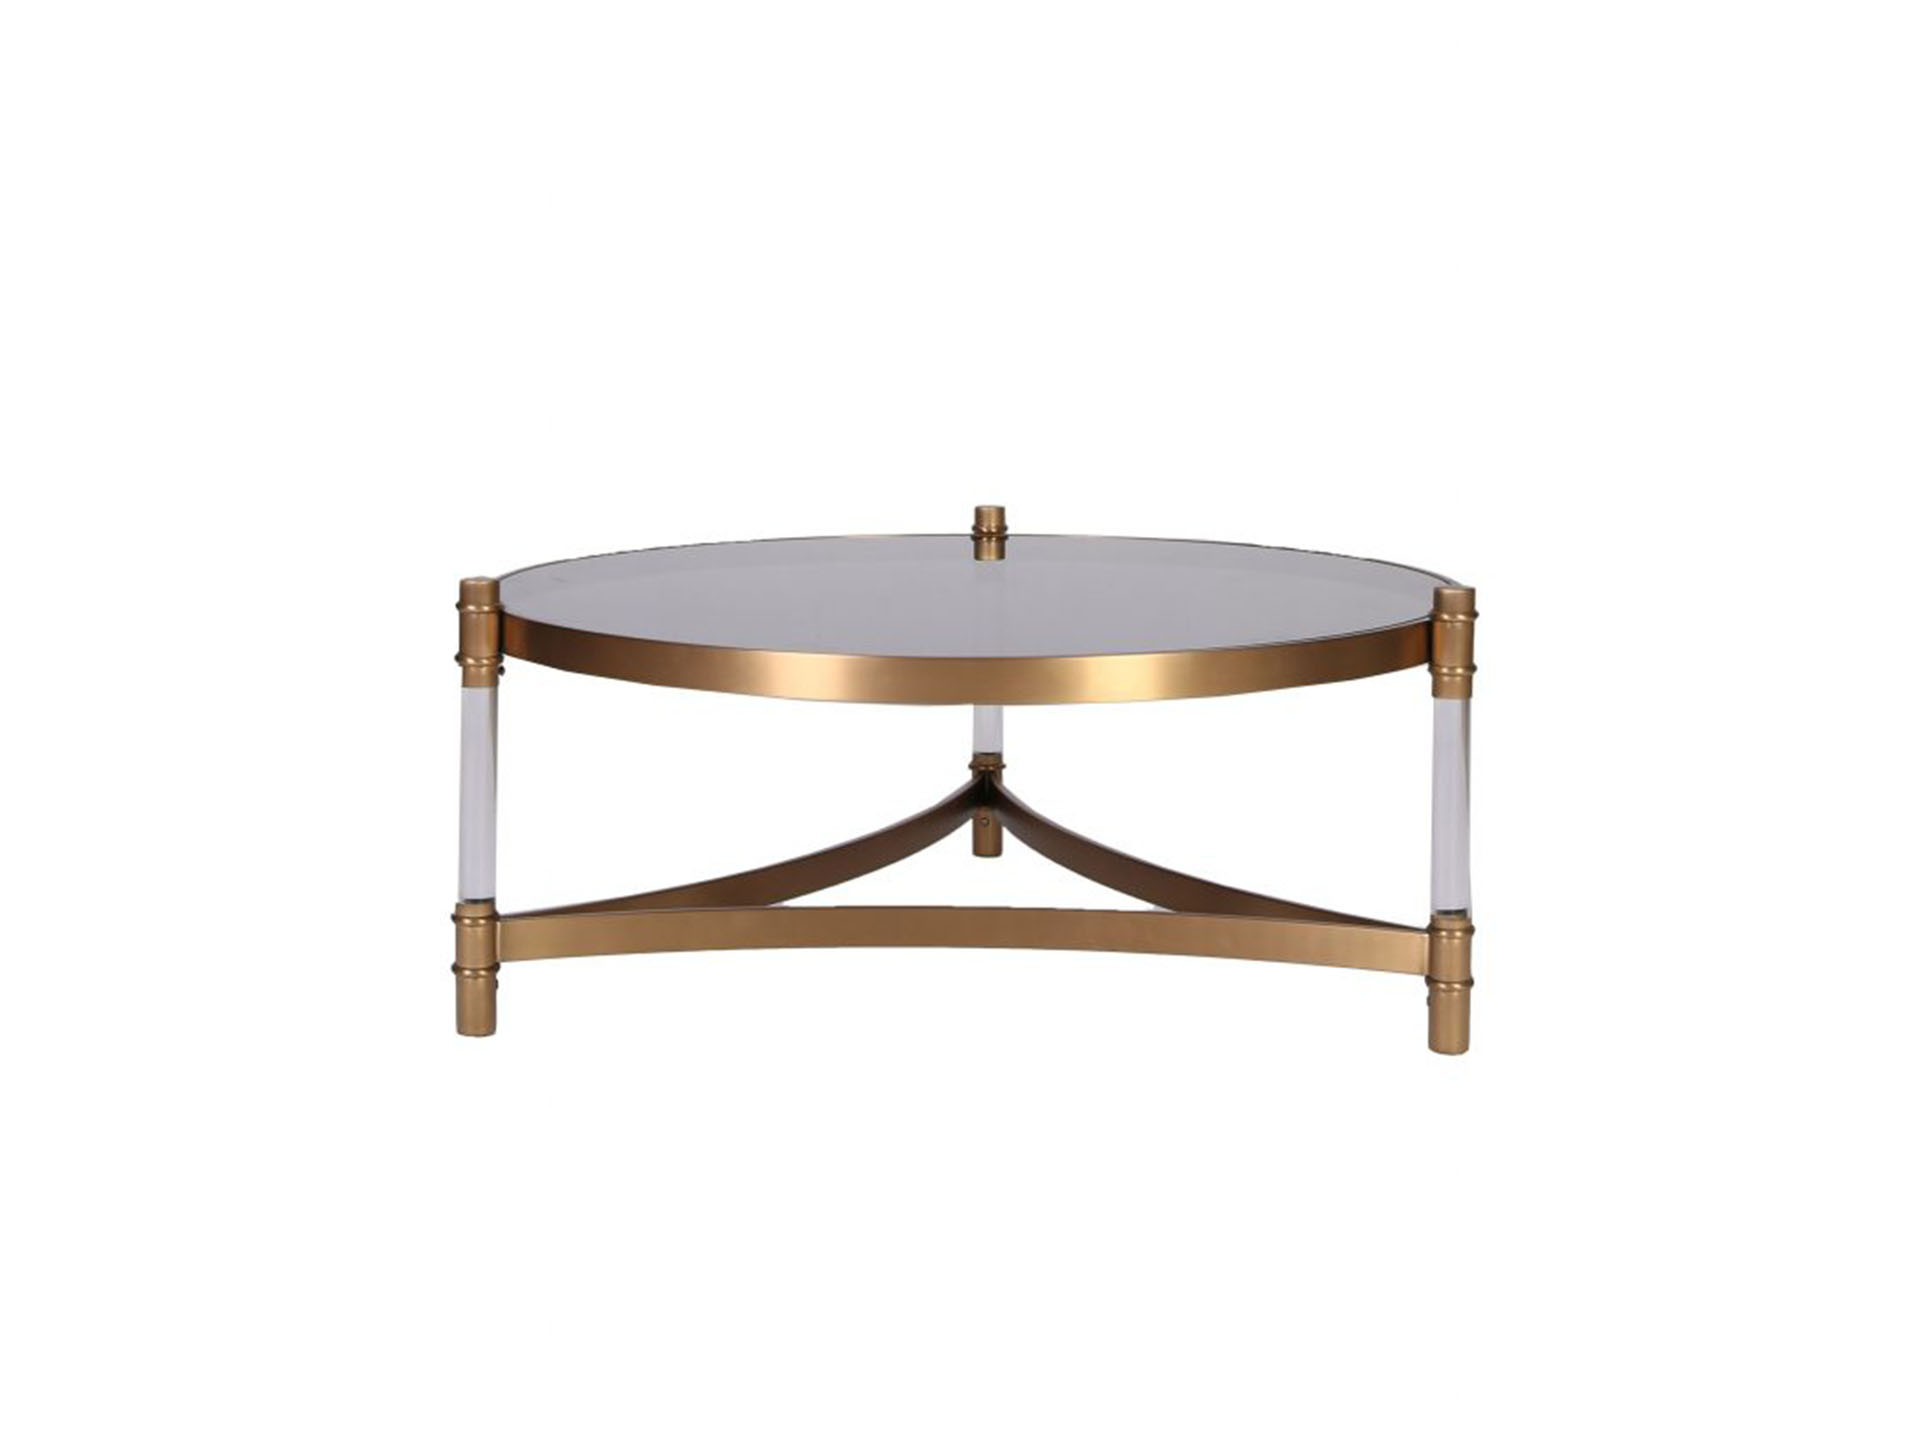 House Haven Besoke Furniture 0000 House haven Coffee Tables 0005 Layer 1 730x1024 1